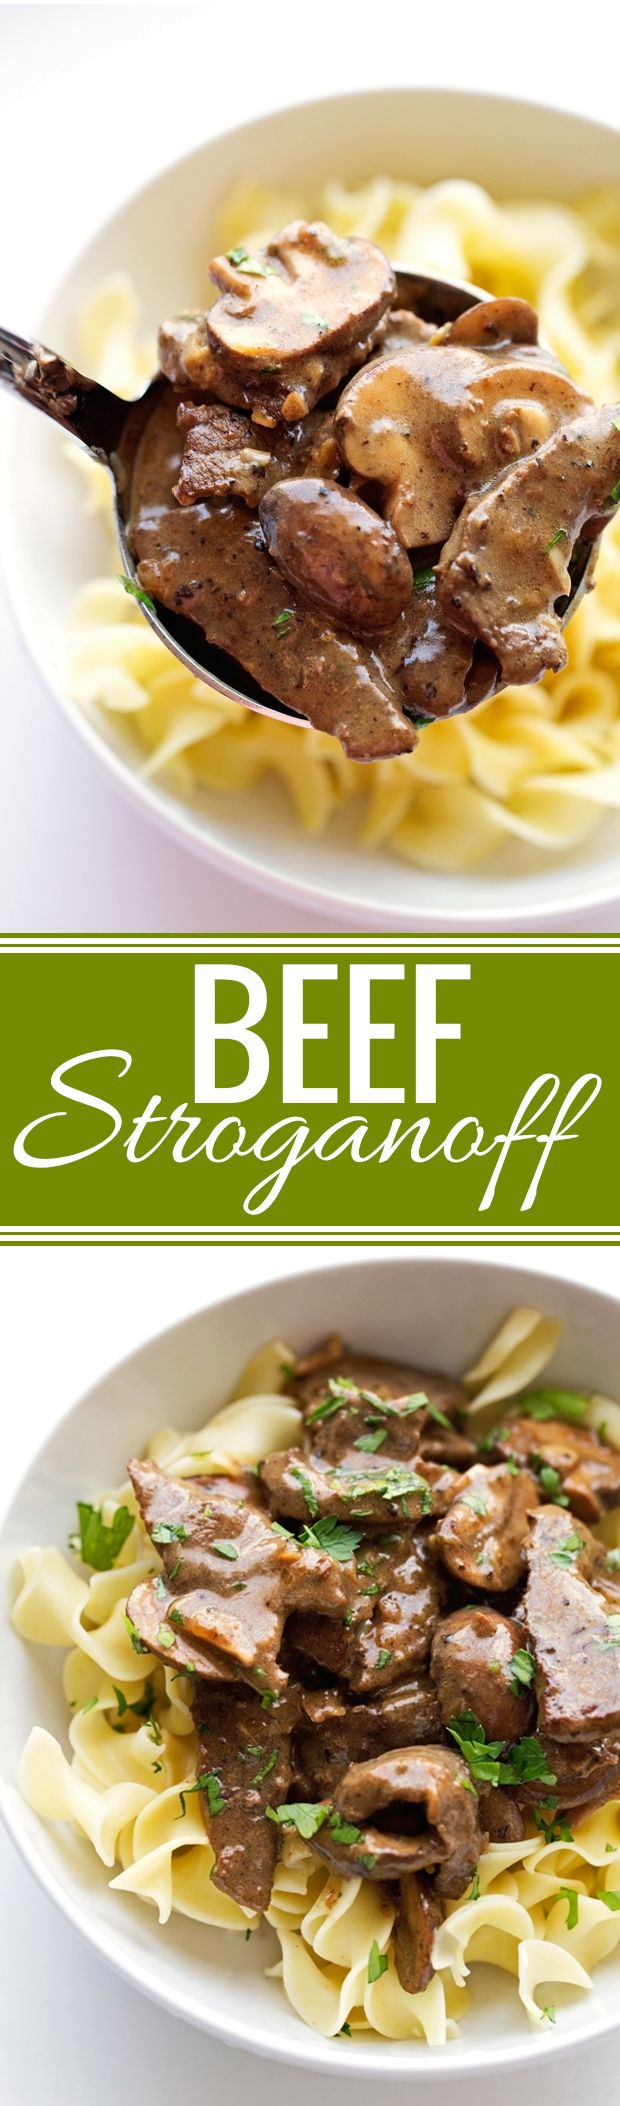 Beef Stroganoff - A simple 30 minute recipe that is super comforting! #stroganoff #beefstroganoff #comfortfood | Littlespicejar.com @littlespicejar